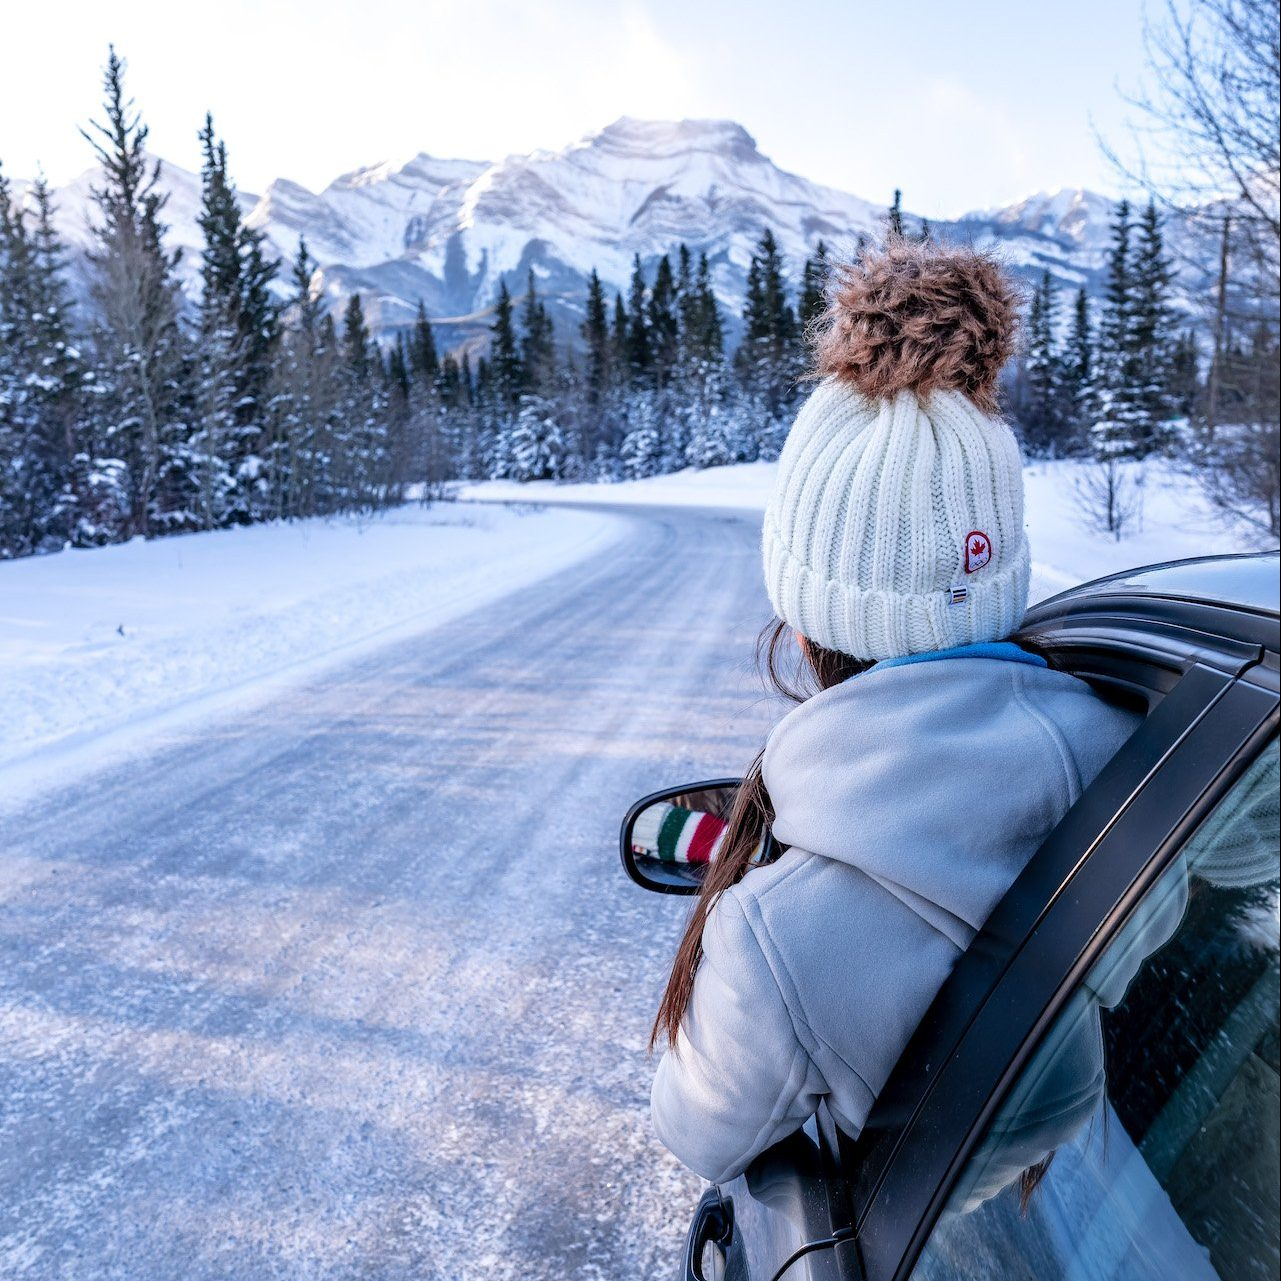 Banff and Canadian Rockies in Winter